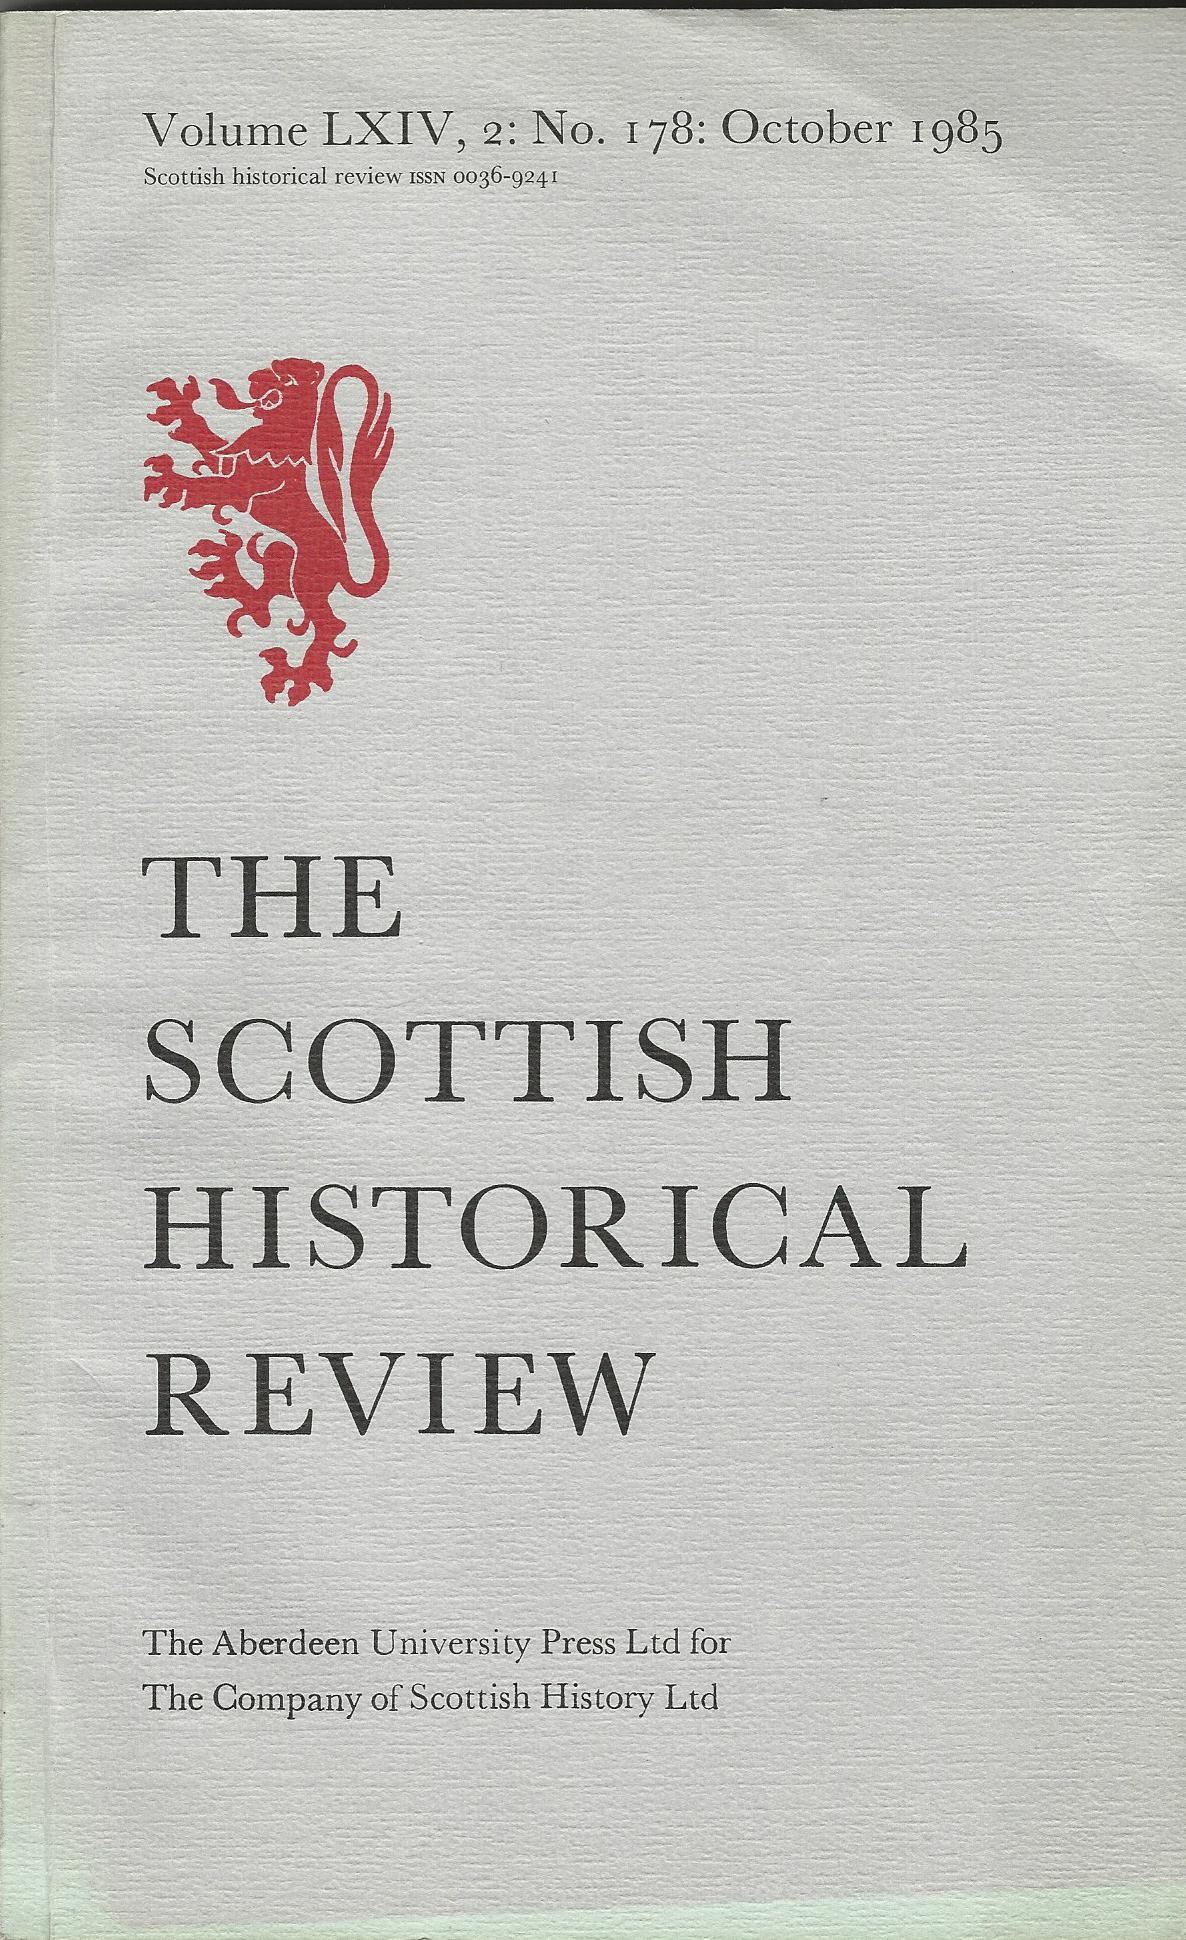 Image for The Scottish Historical Review Volume LXIV, 2: No. 178: October 1985